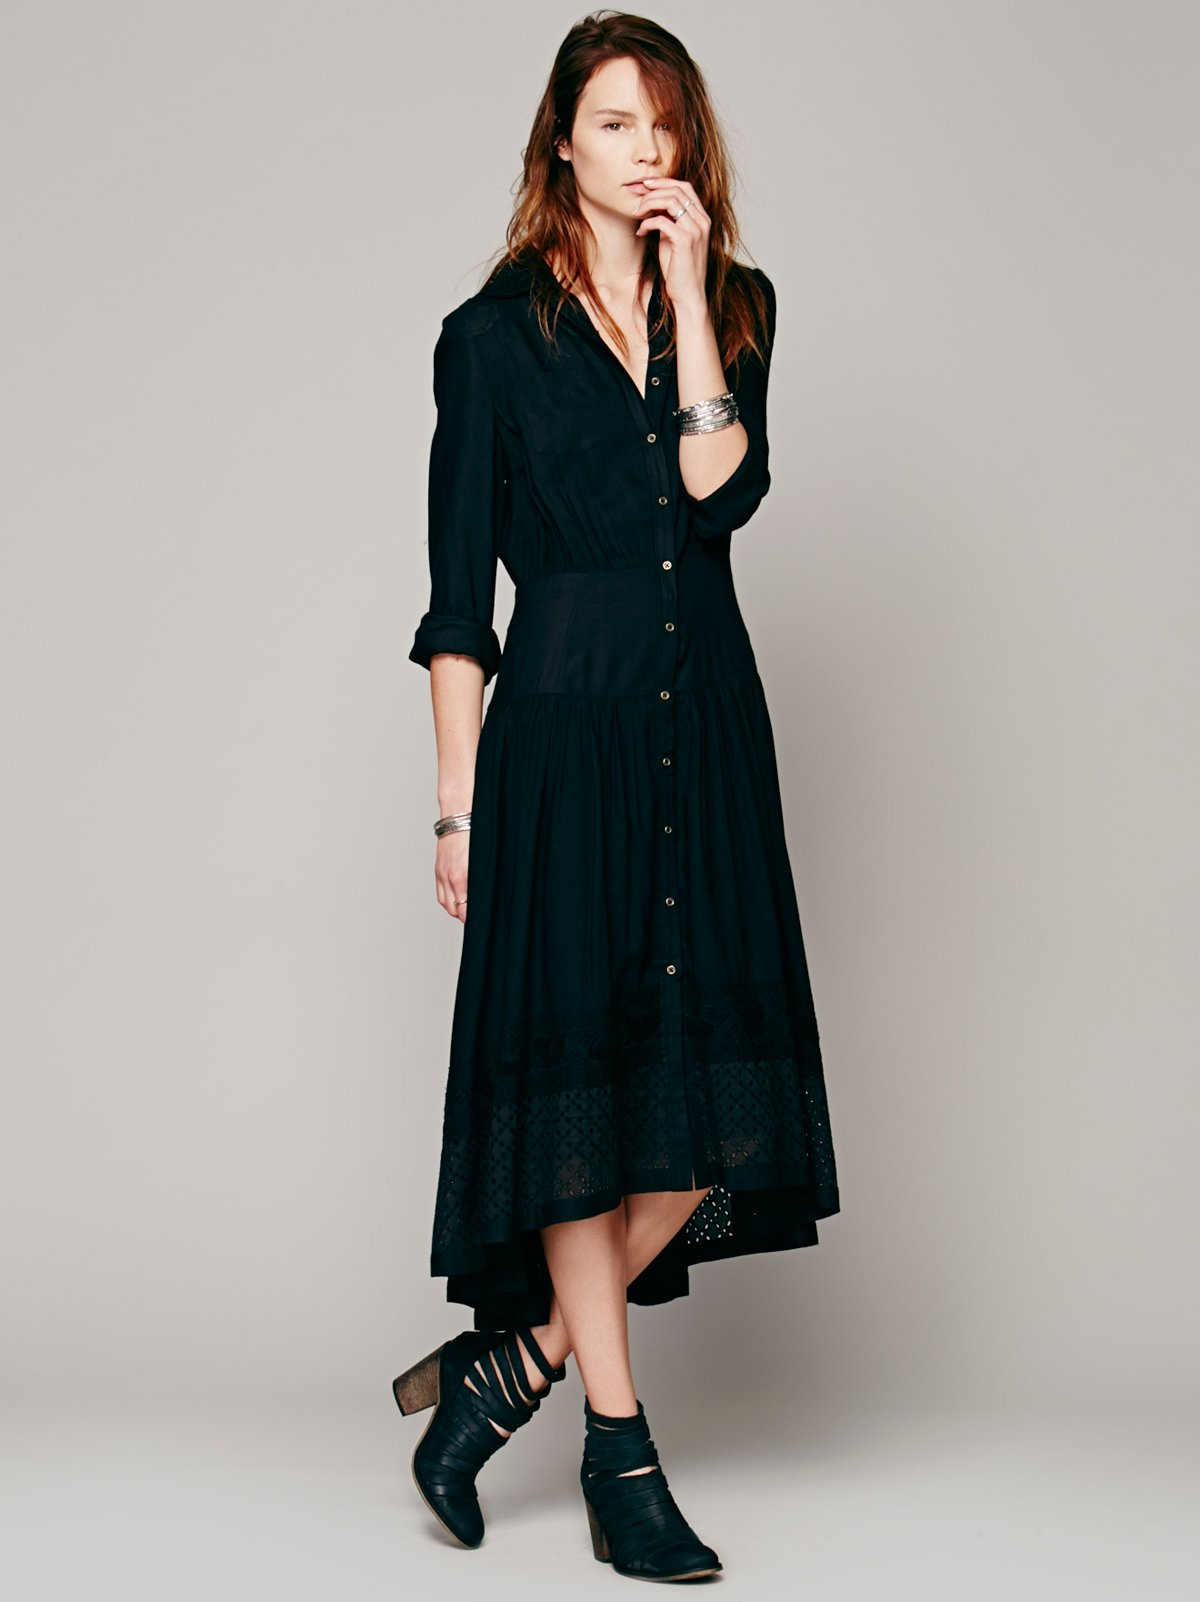 FP New Romantics Dream Shirt Dress